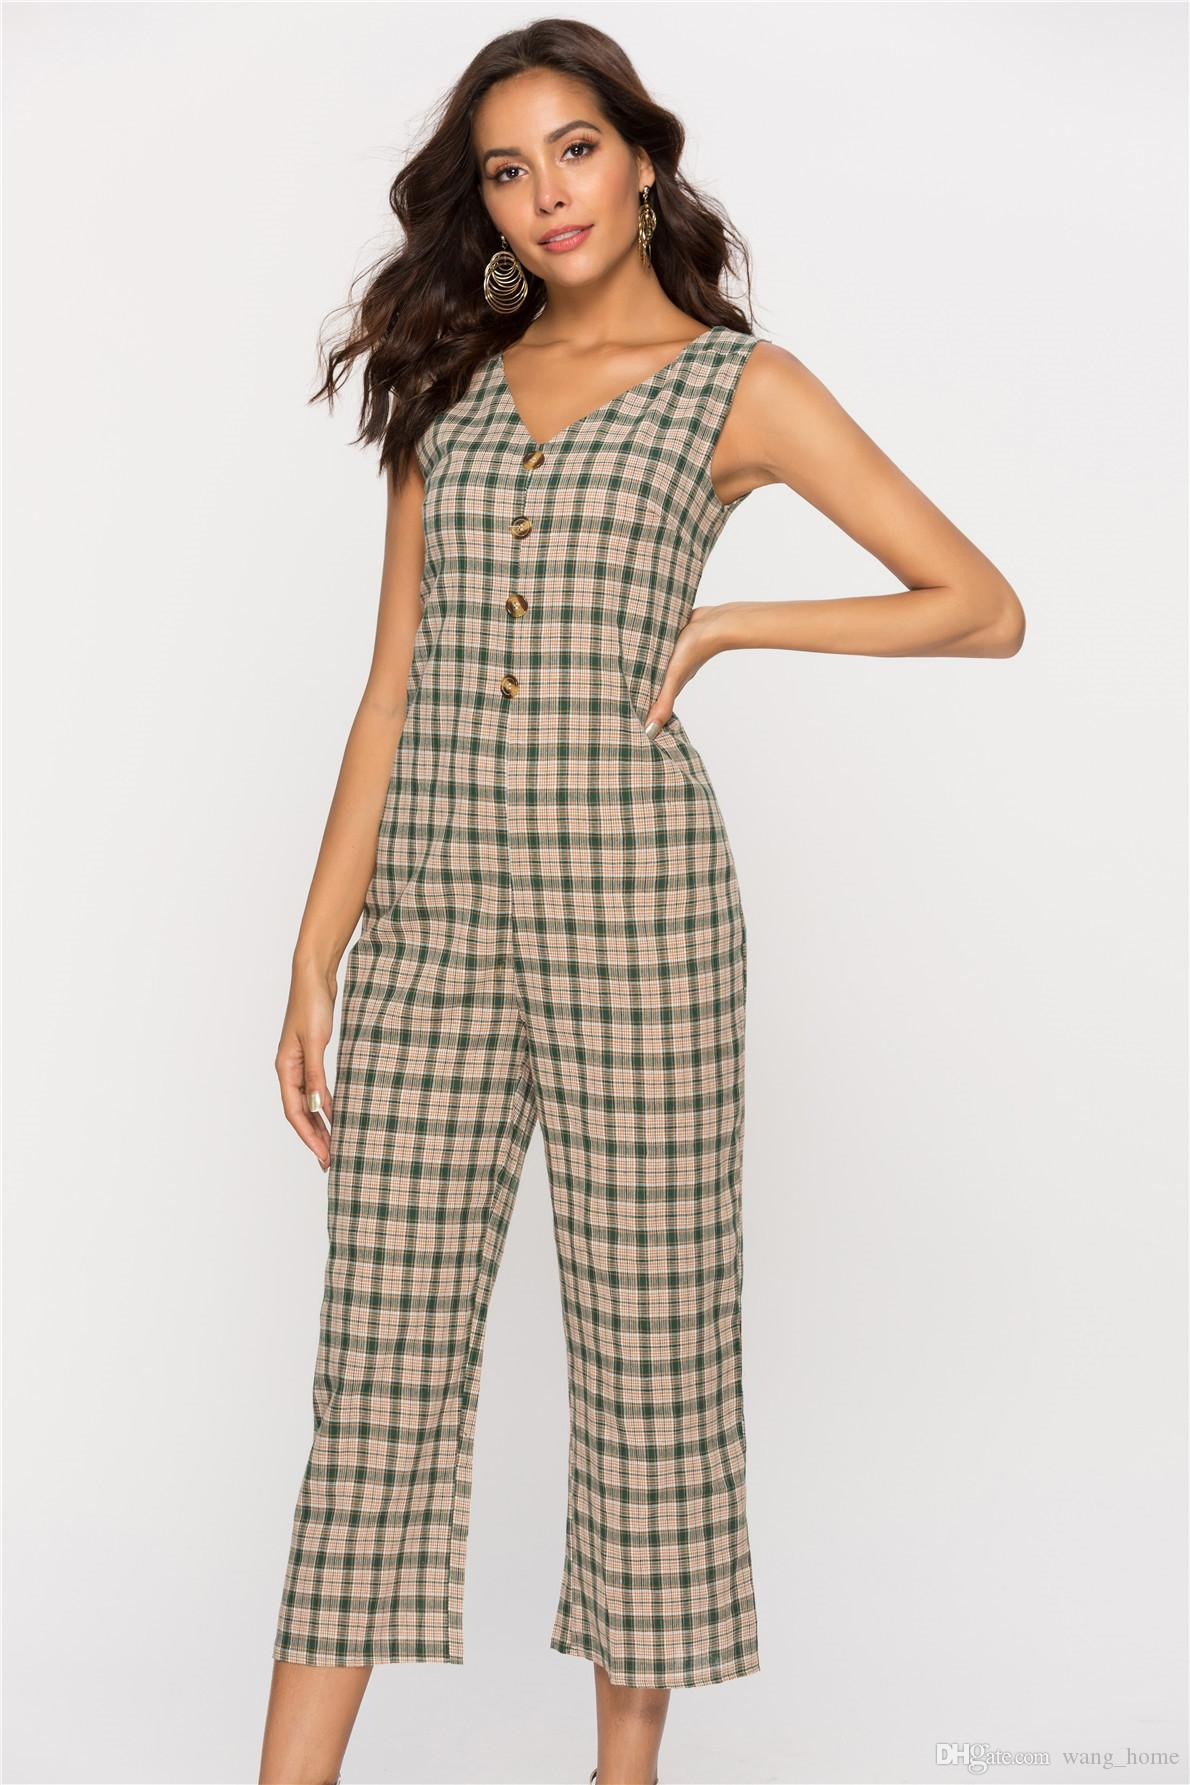 2020 New Casual And Fashion Design Ladies Jumper Ladies V Neck Regular Sleeveless Plaid Pattern Ladies Jumpsuits From Wang Home 18 39 Dhgate Com